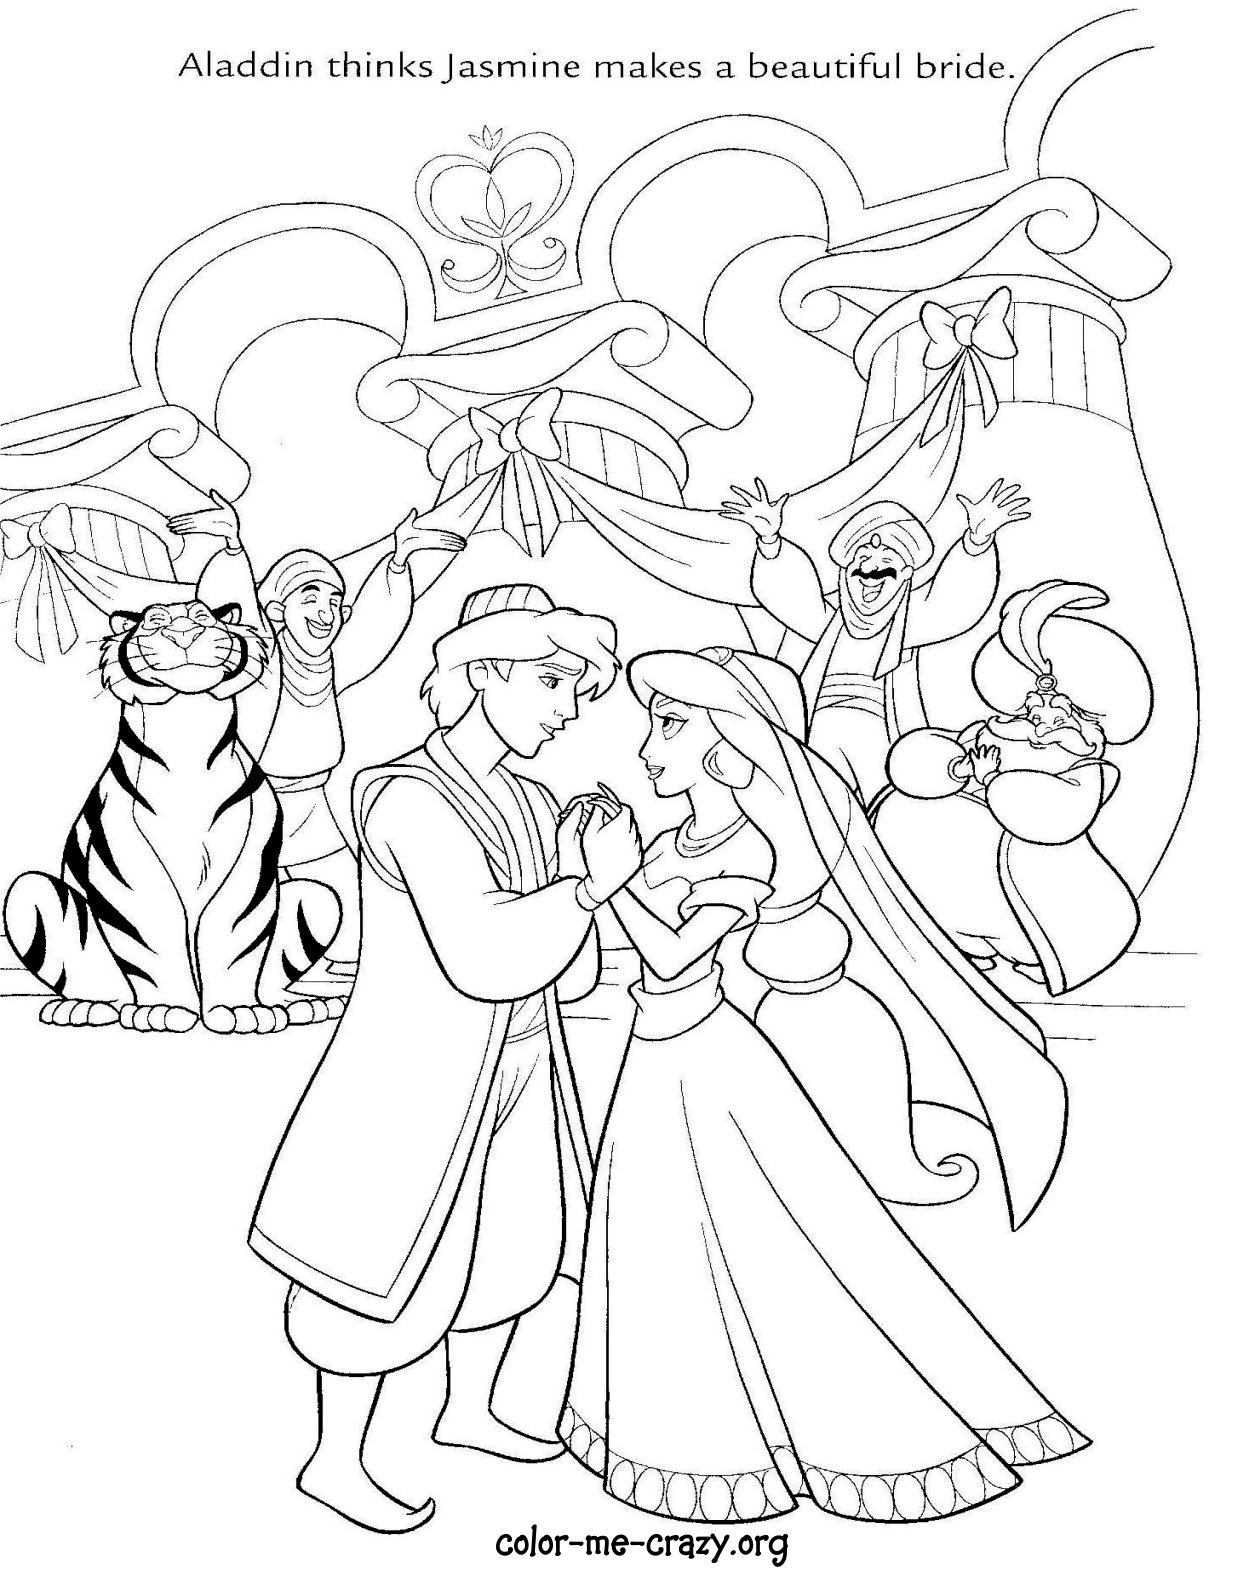 wedding coloring sheets wedding coloring pages 13 kids sketch coloring page sheets wedding coloring